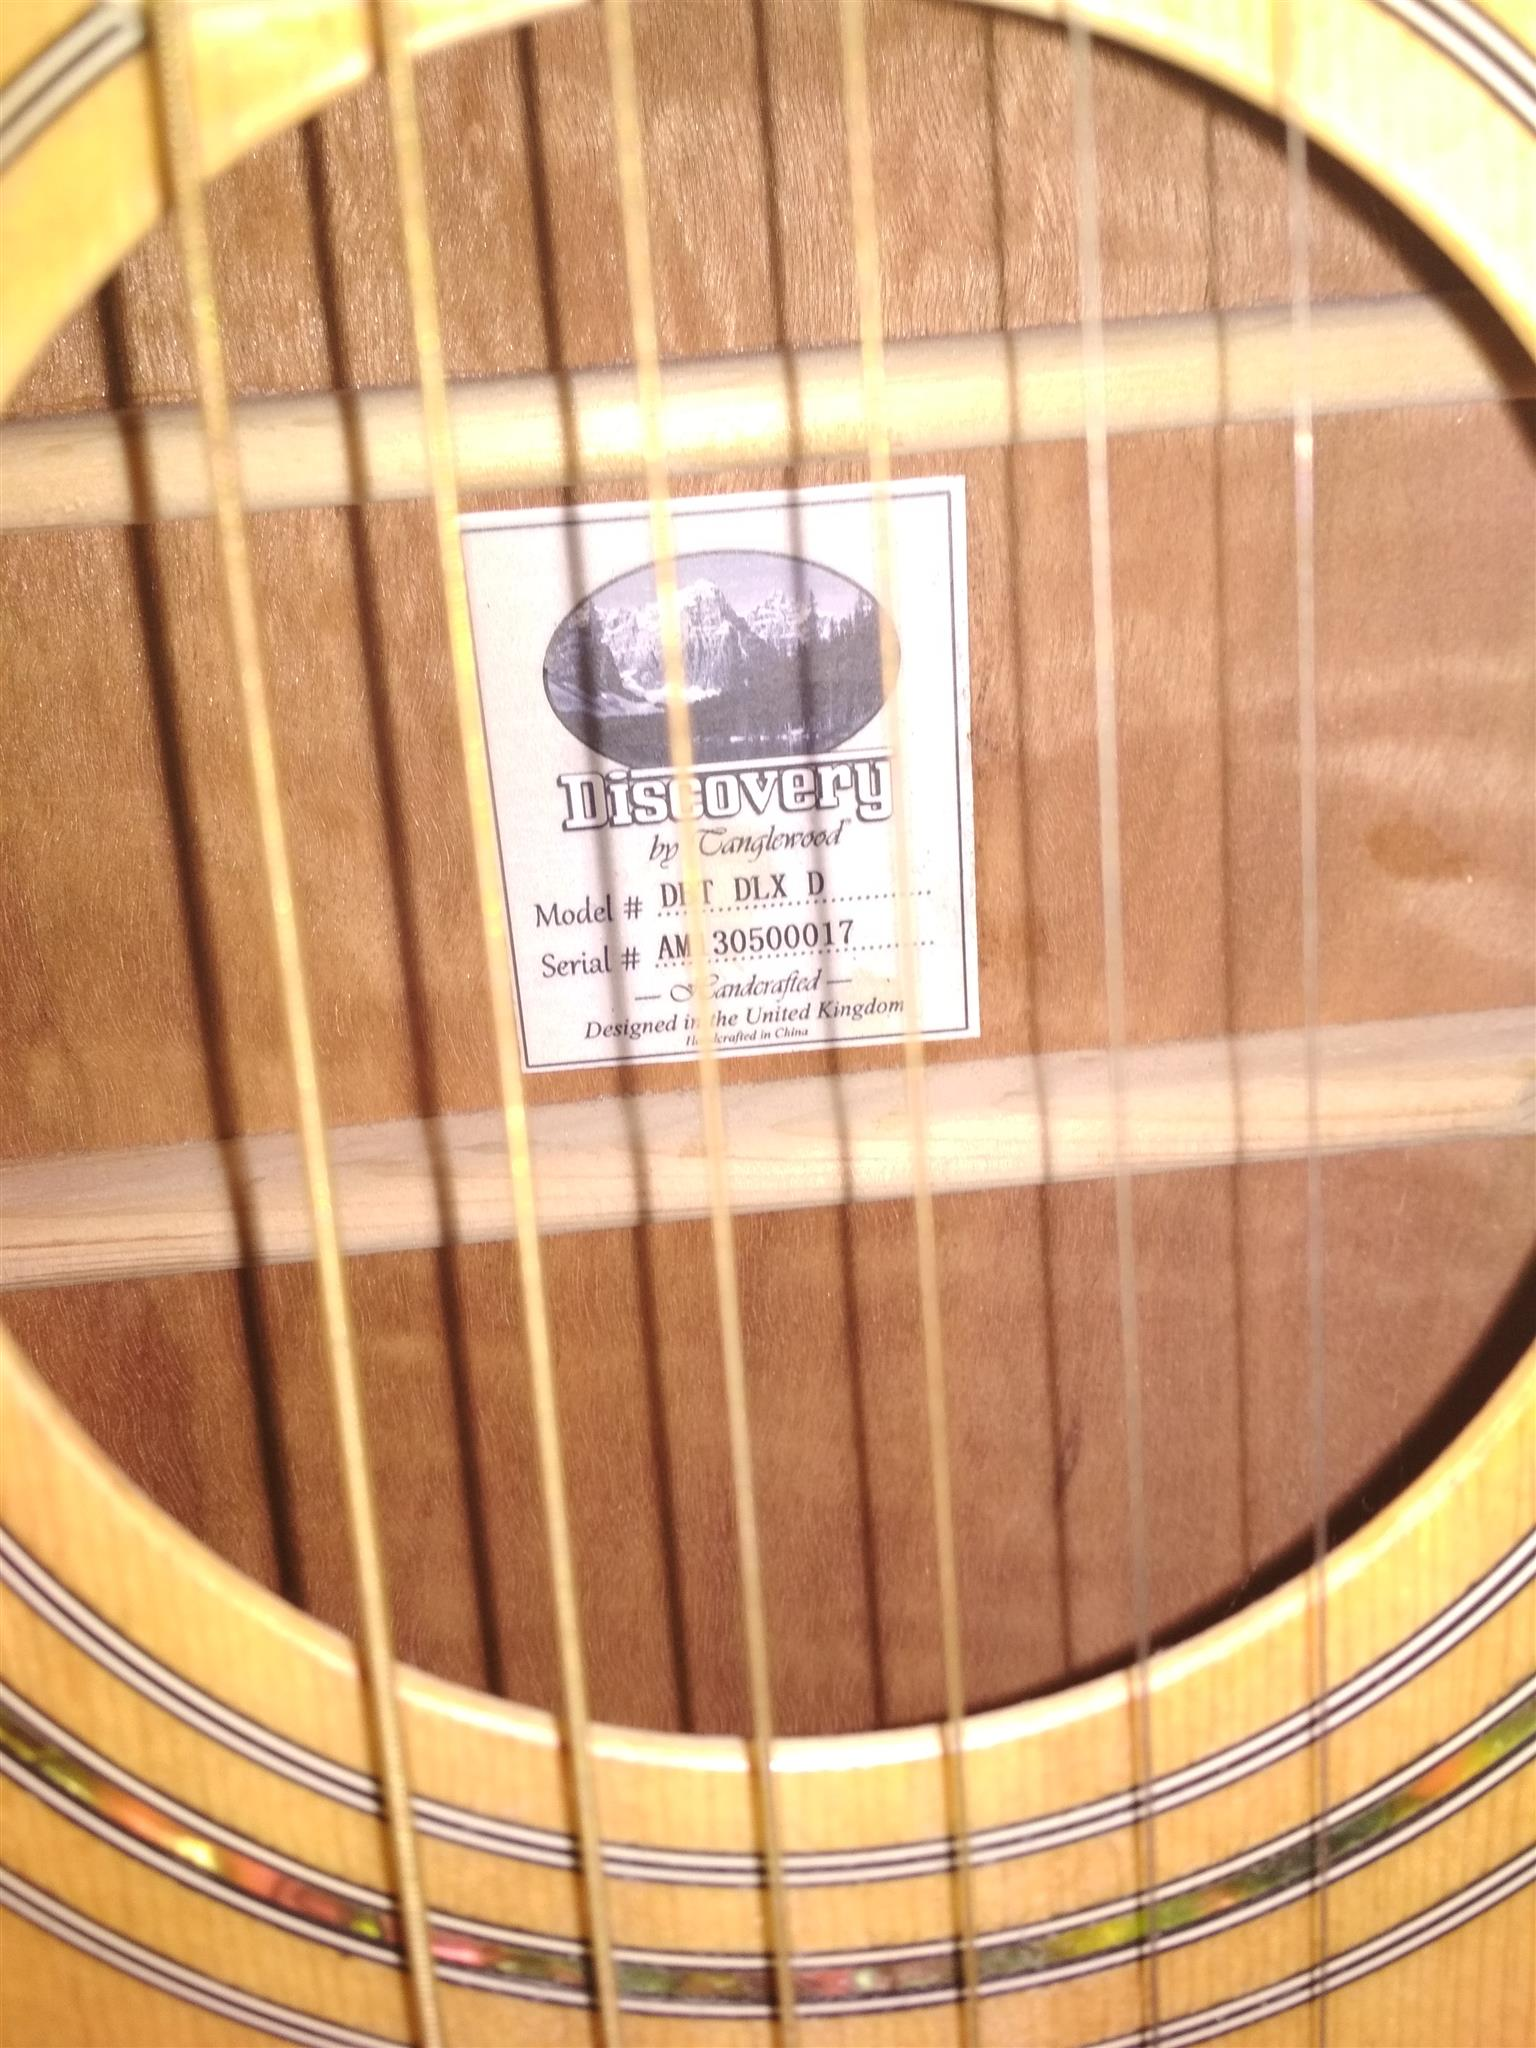 Tanglewood acoustic guitar & Ritmüller electric guitar and accessories